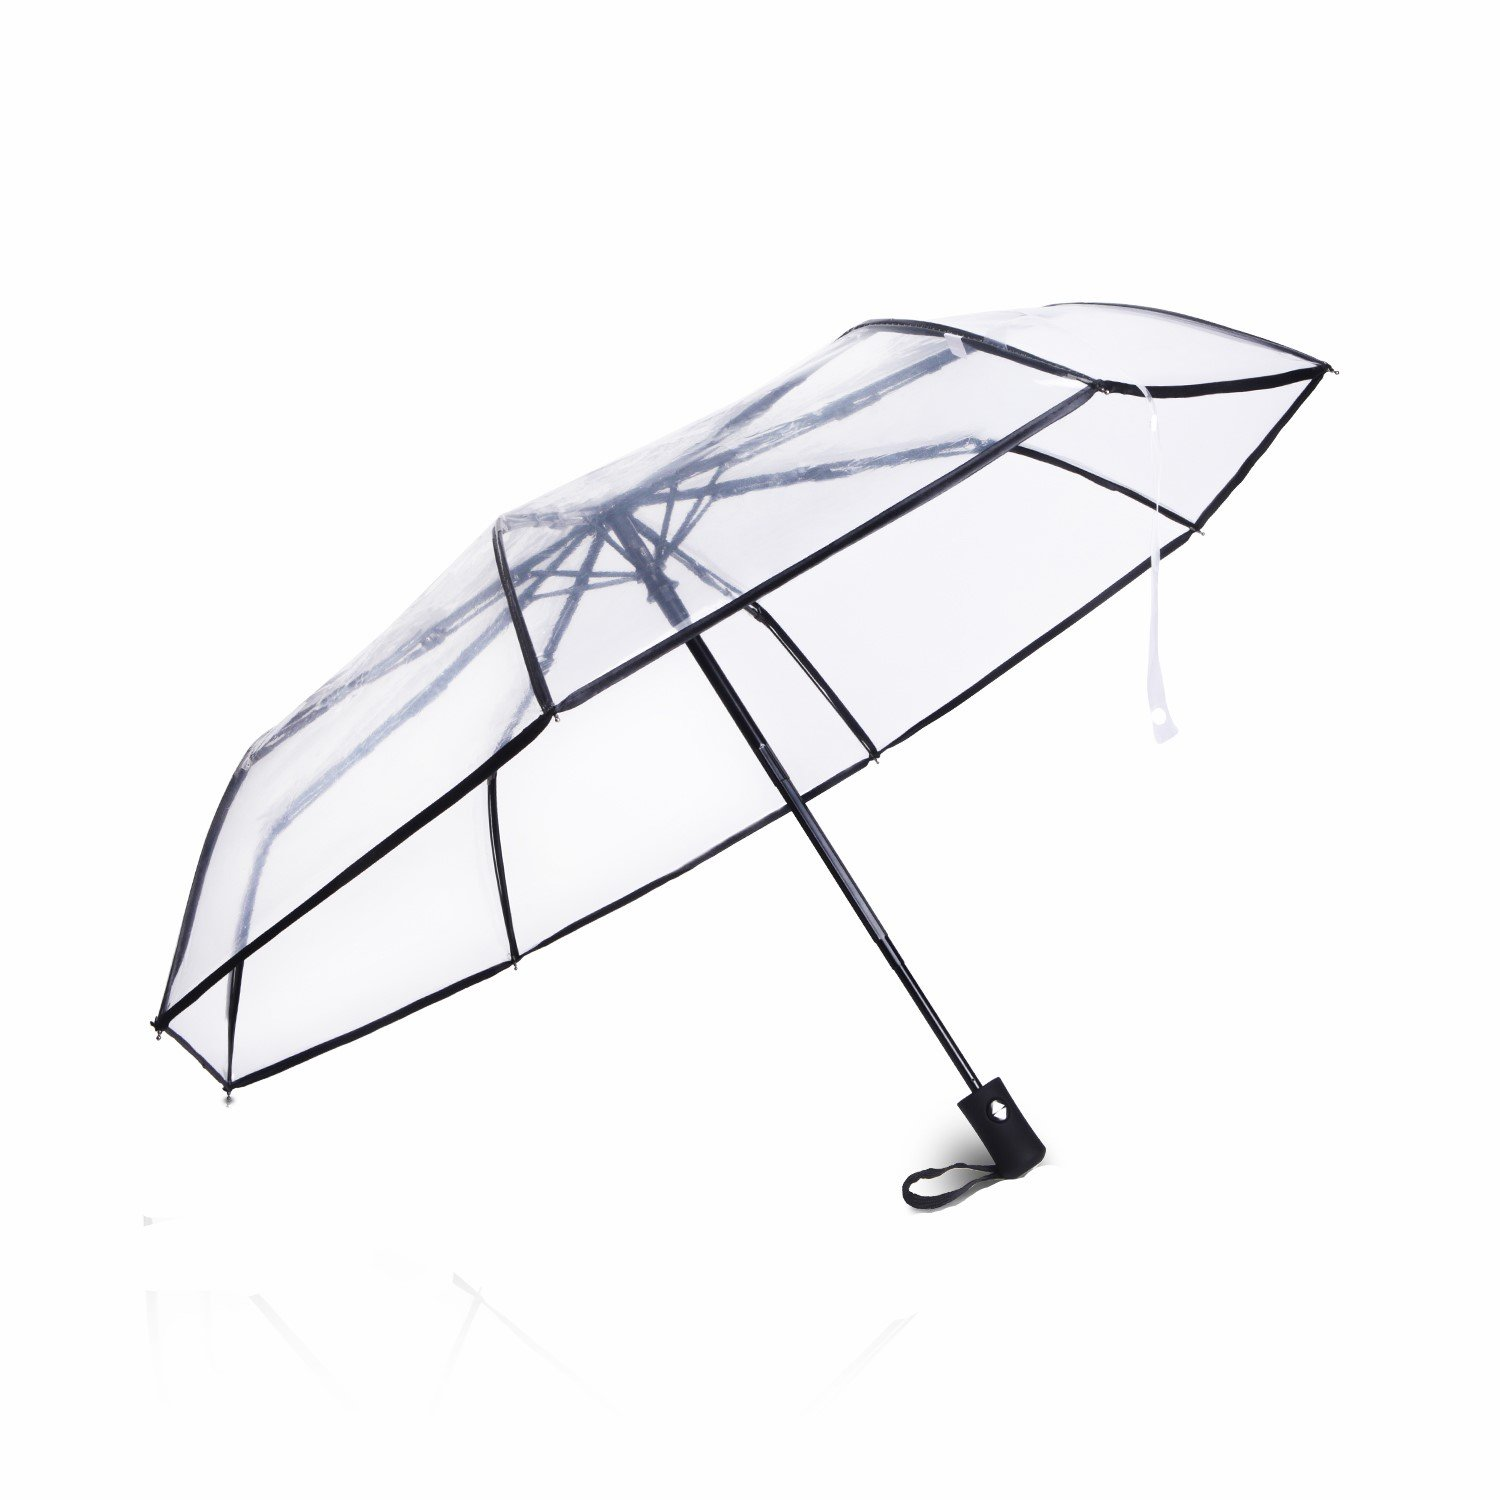 Clear/Transparent Automatic Folding Umbrella,Meiyaa Unisex Colourful Clear Umbrellas (A)